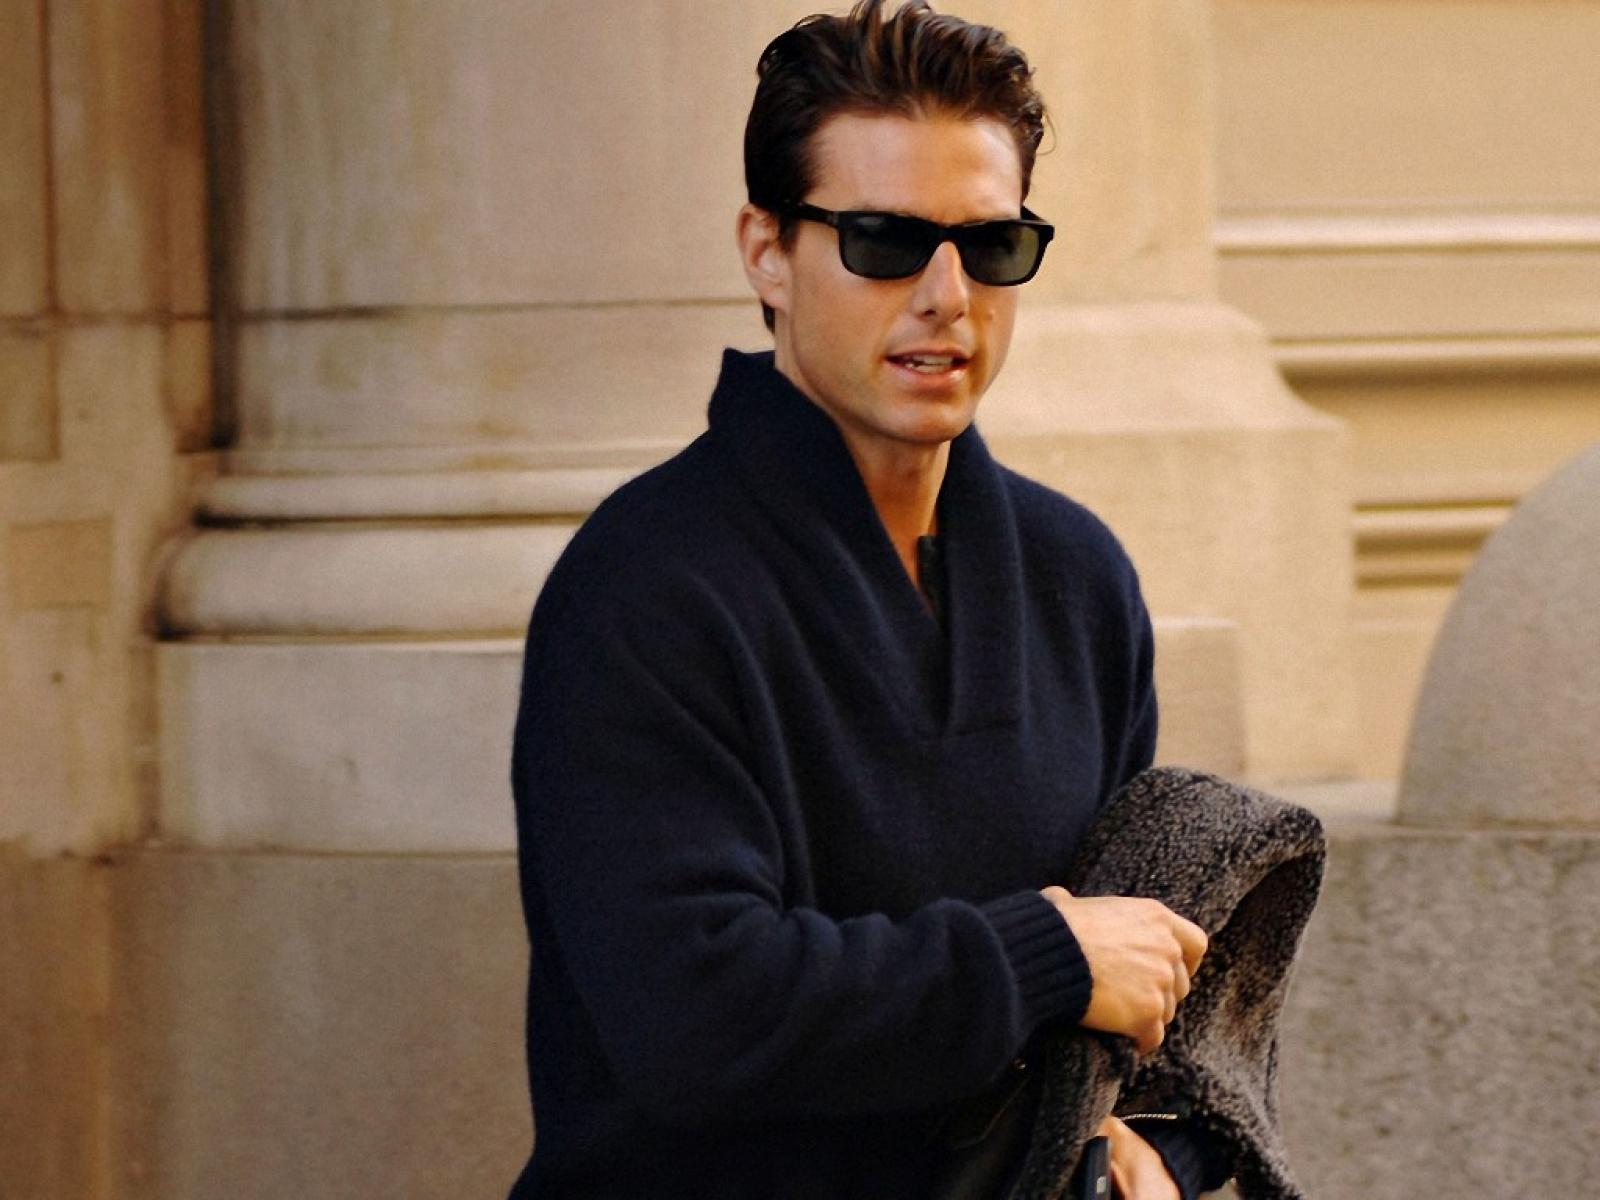 Tom Cruise images 49 wallpapers   Qularicom 1600x1200